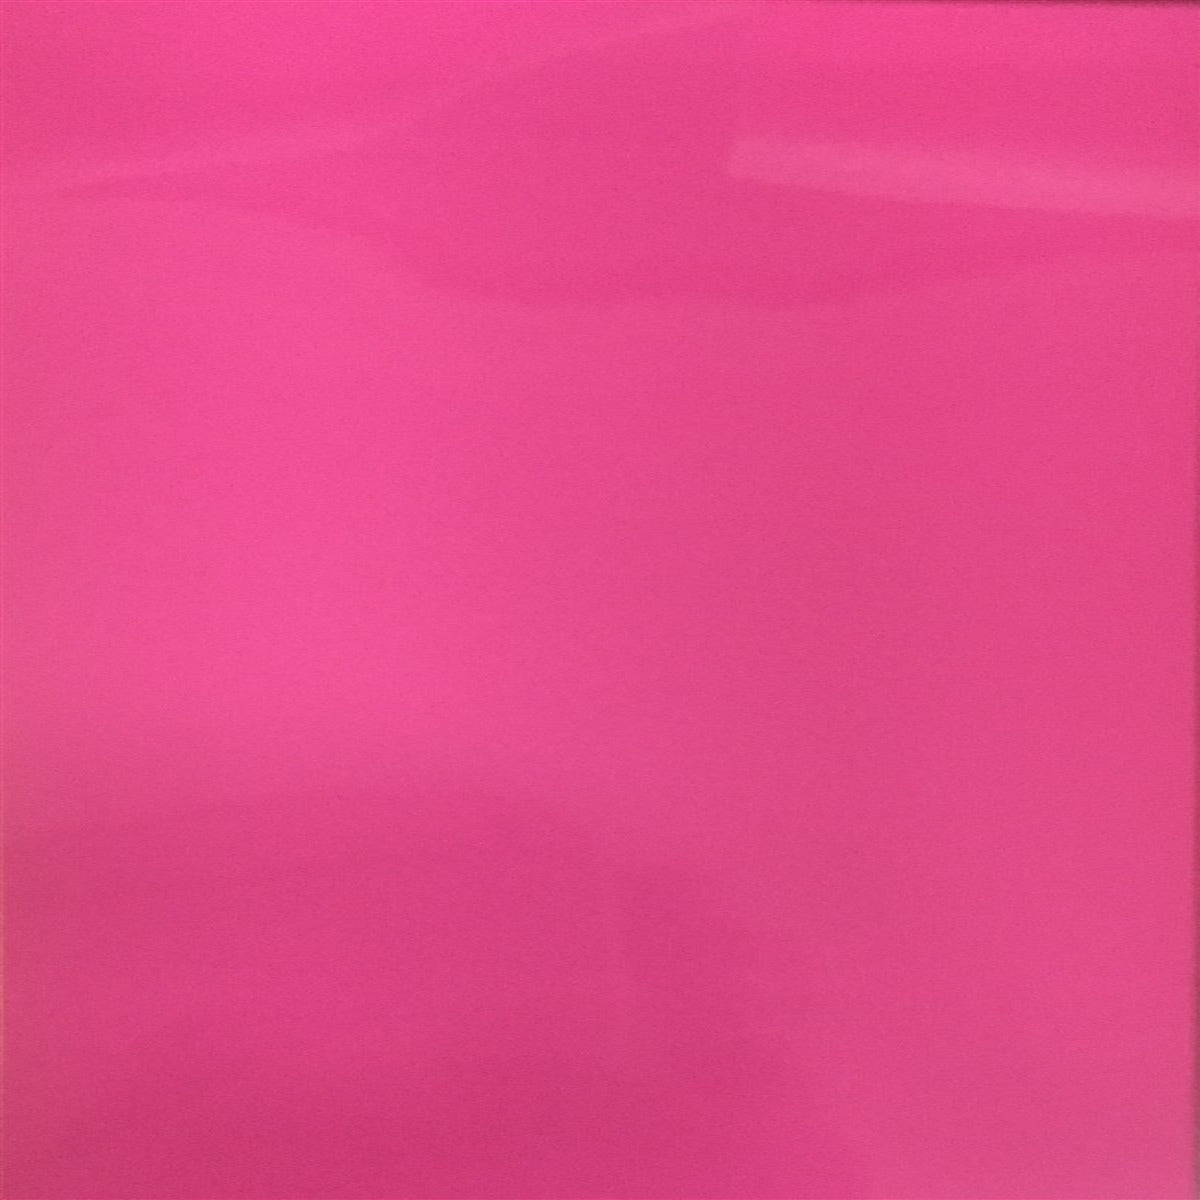 Fuchsia Faux Patent Leather Vinyl Fabric - Fashion Fabrics Los Angeles